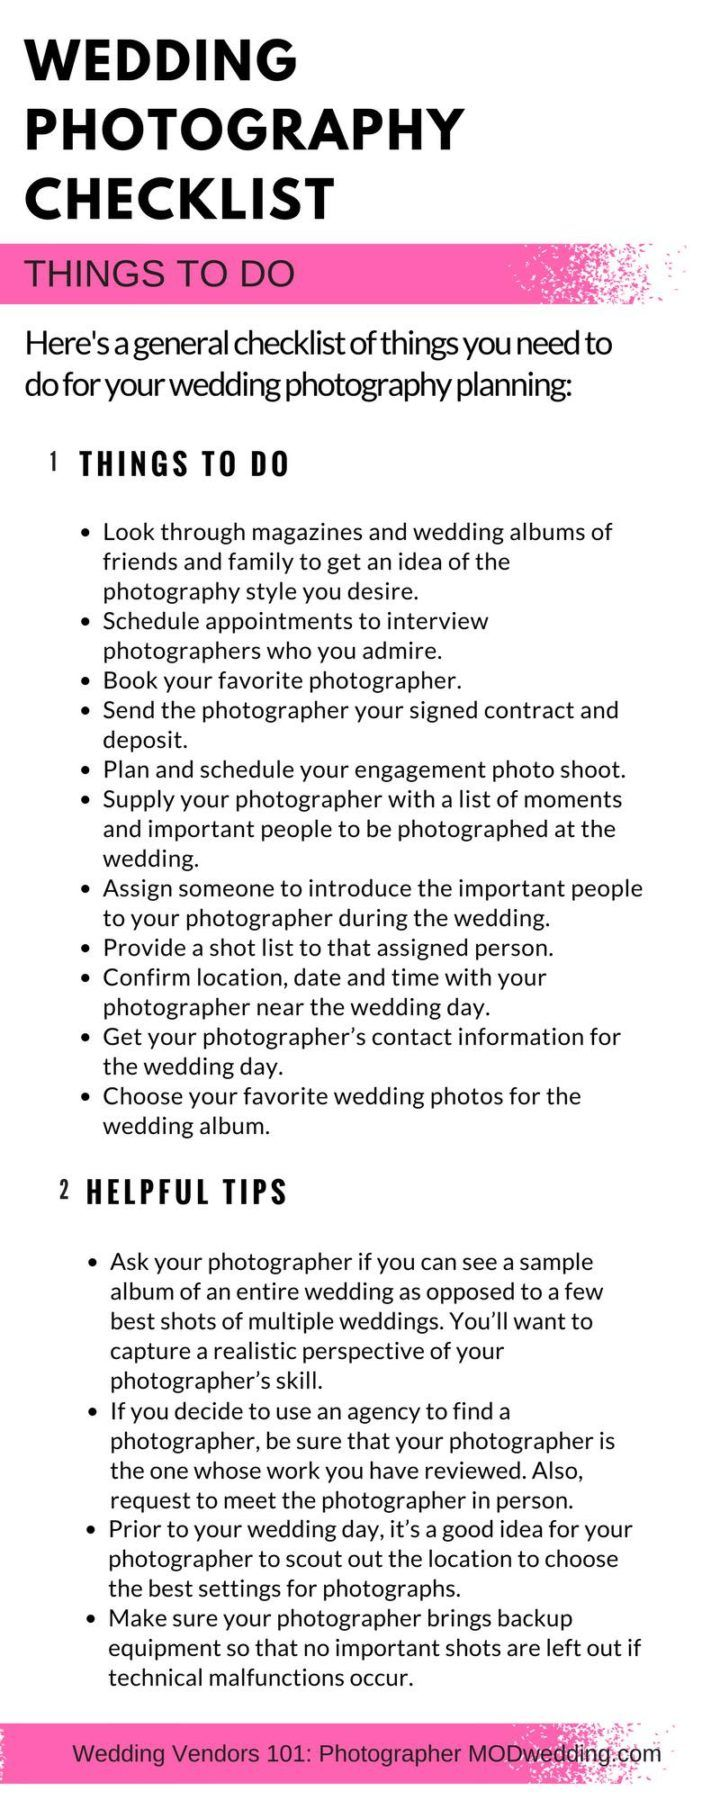 Wedding Photography Checklist: Things to Do...